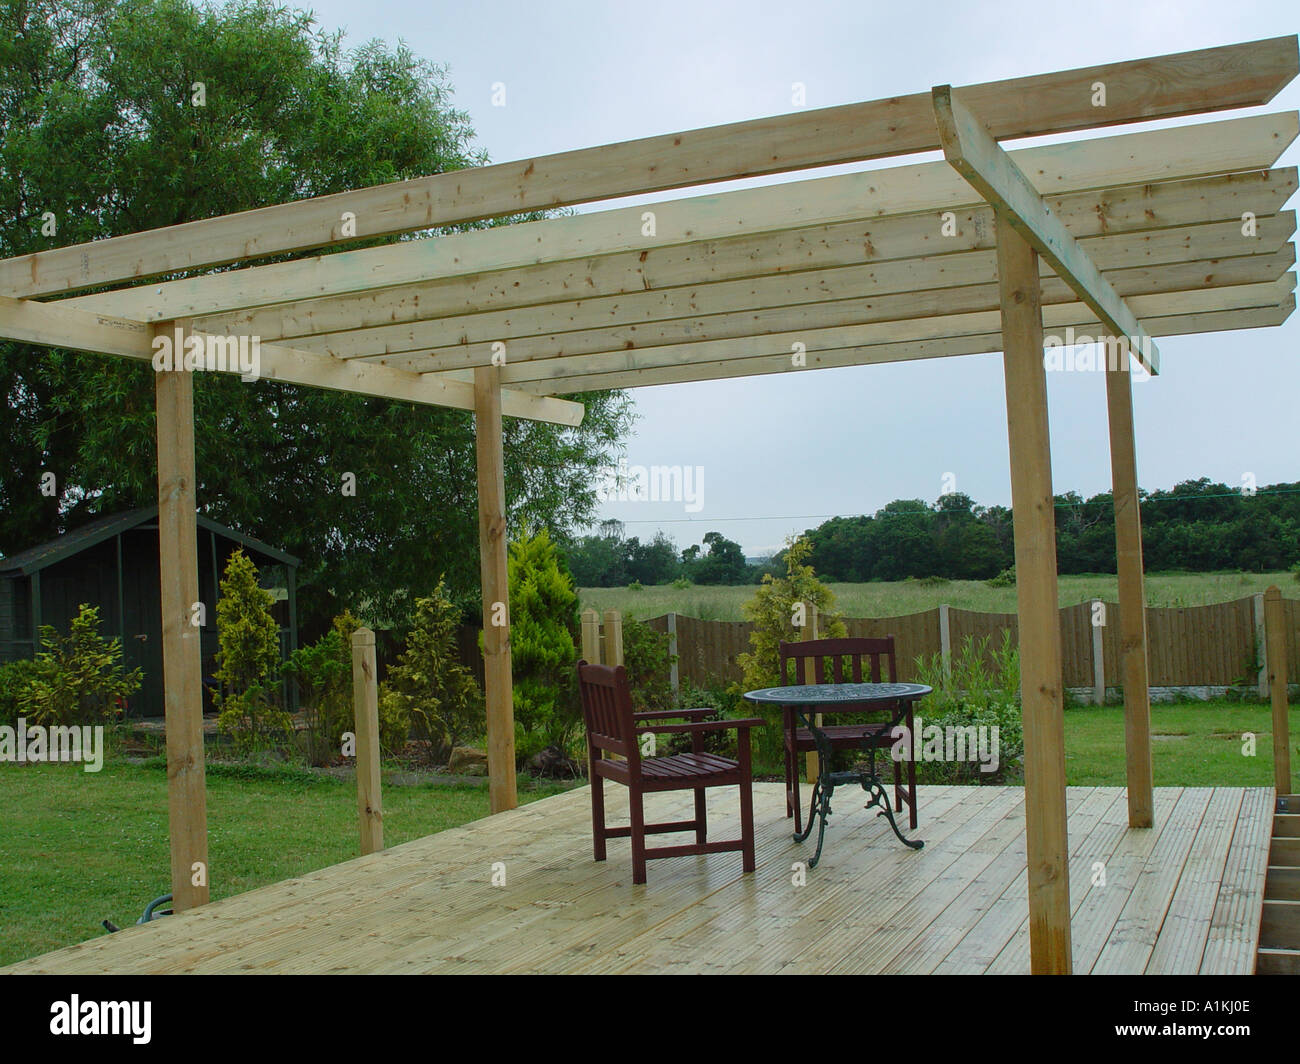 Pergola over garden patio deck the decking and pergola are constructed from  tanalised timber for long life - Pergola Over Garden Patio Deck The Decking And Pergola Are Stock